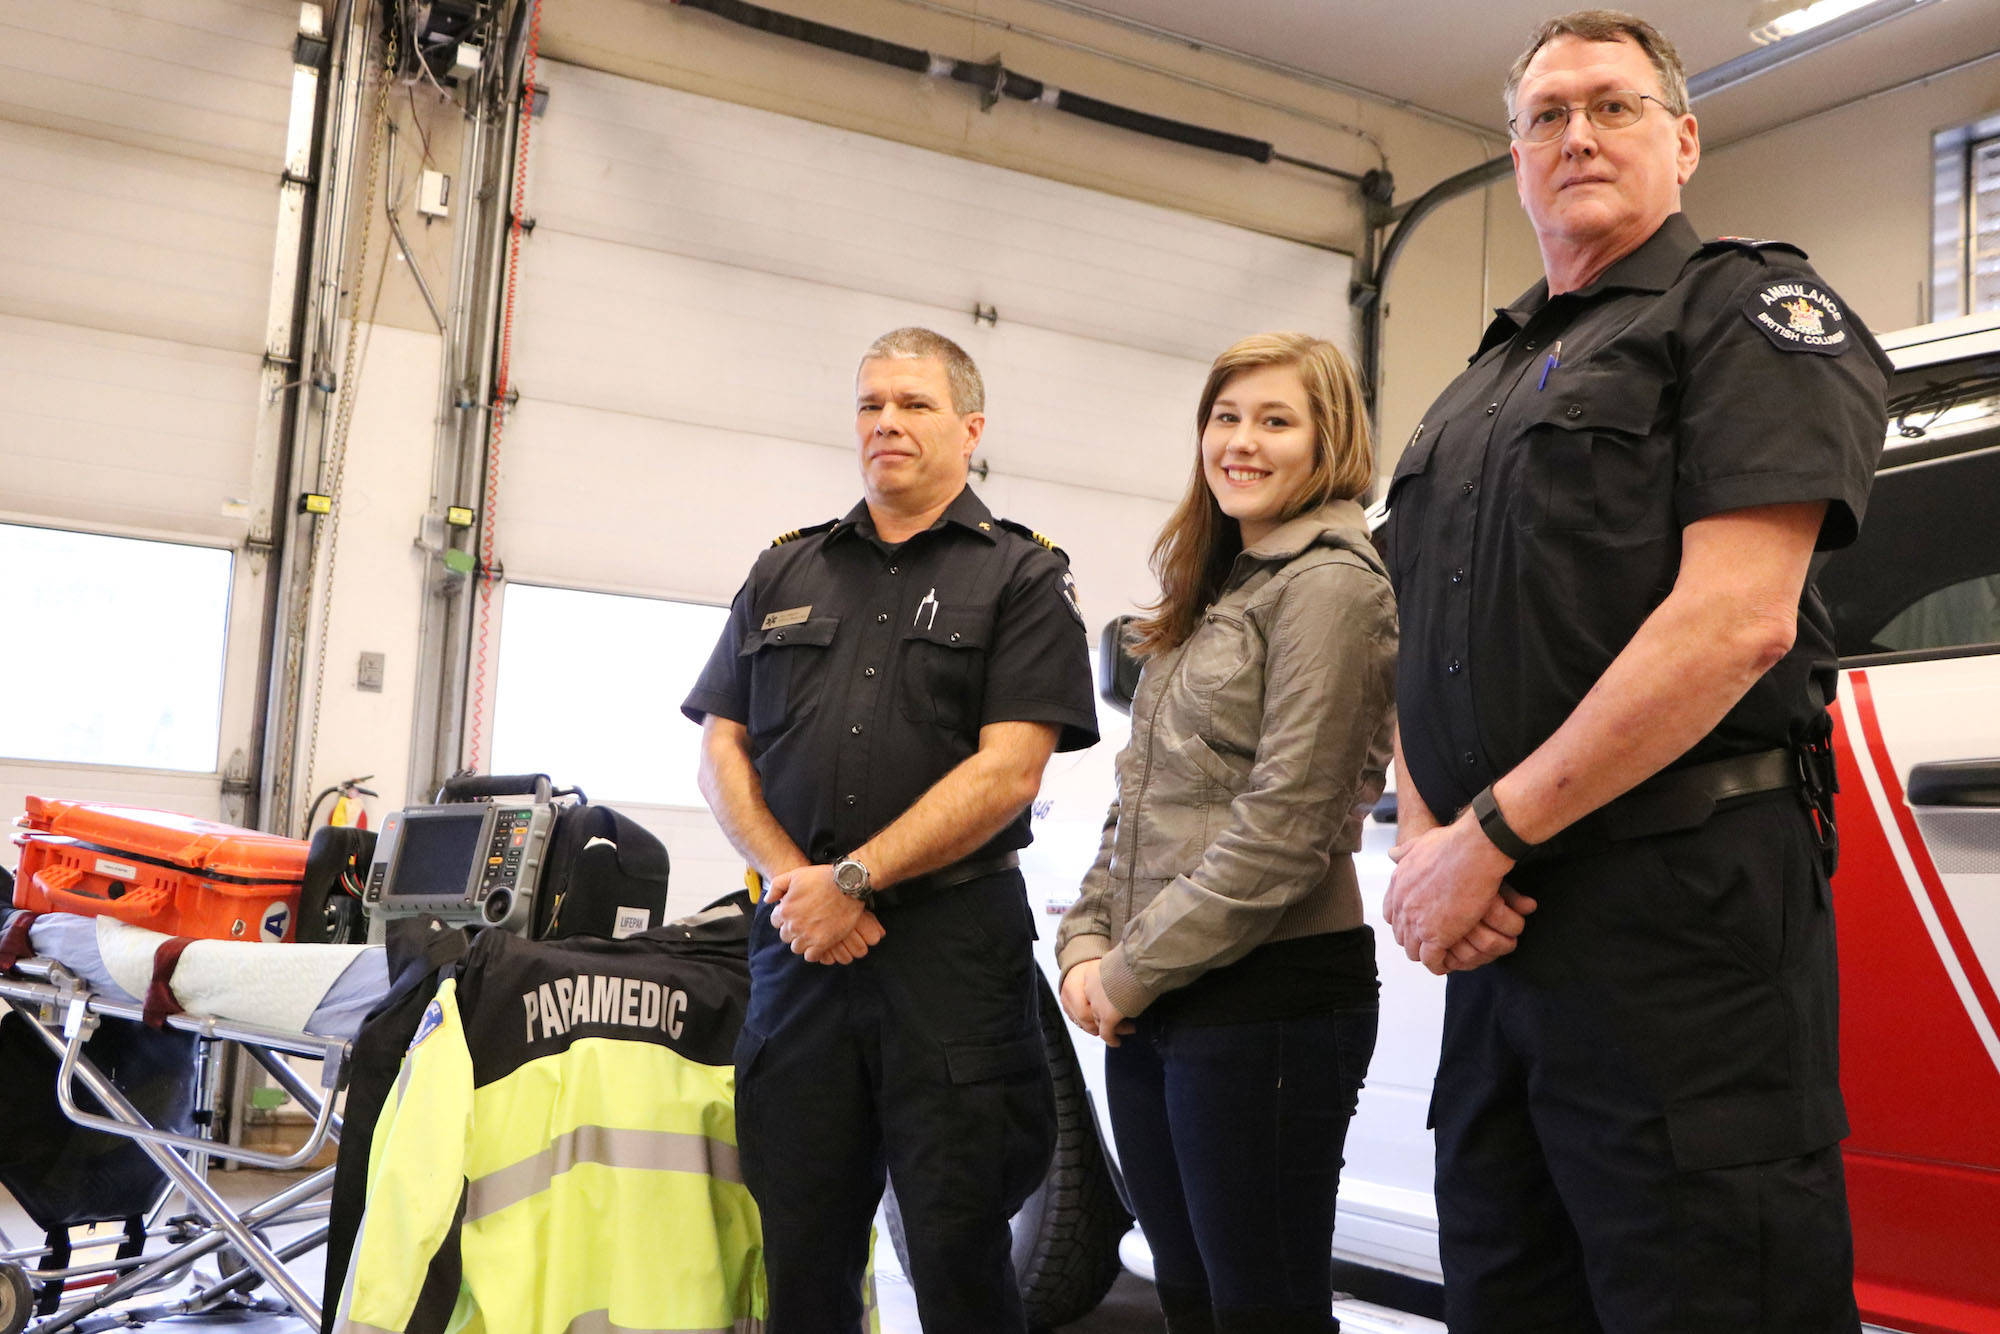 Paramedics Roy Stanley (left) and Derek Morris got to meet 19-year-old Jayden Arnold for the first time since they saved her life 17 years ago Friday morning.                                (Dustin Godfrey/Western News)